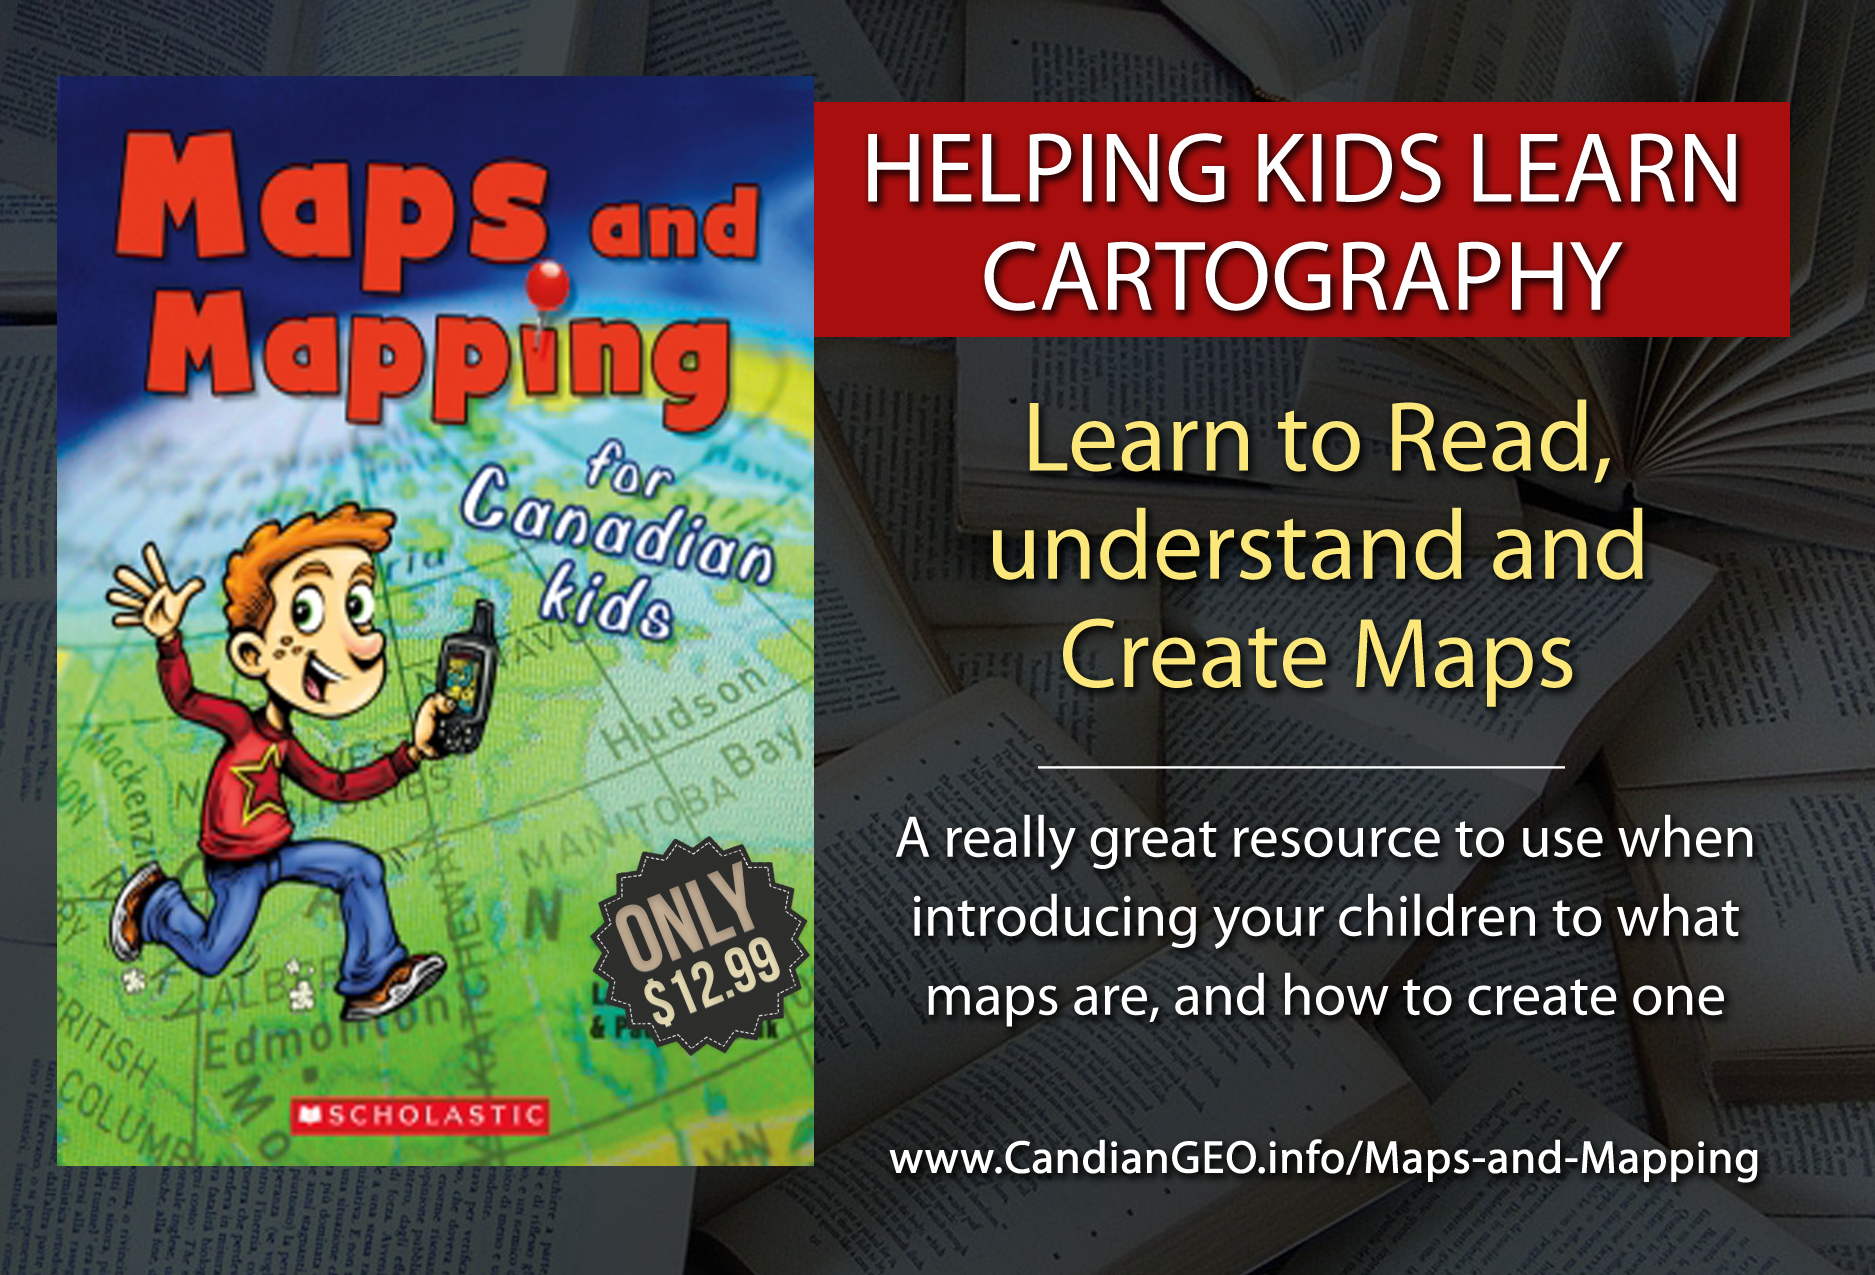 Your Child Learns Maps on live map, research map, language map, create map, lean map, save map, contact us map, connect map, set map, calculate map, well map, locate map, sleep map, navigate map, refugee statistics map, see map, lead map, measure map, apply map, move map,